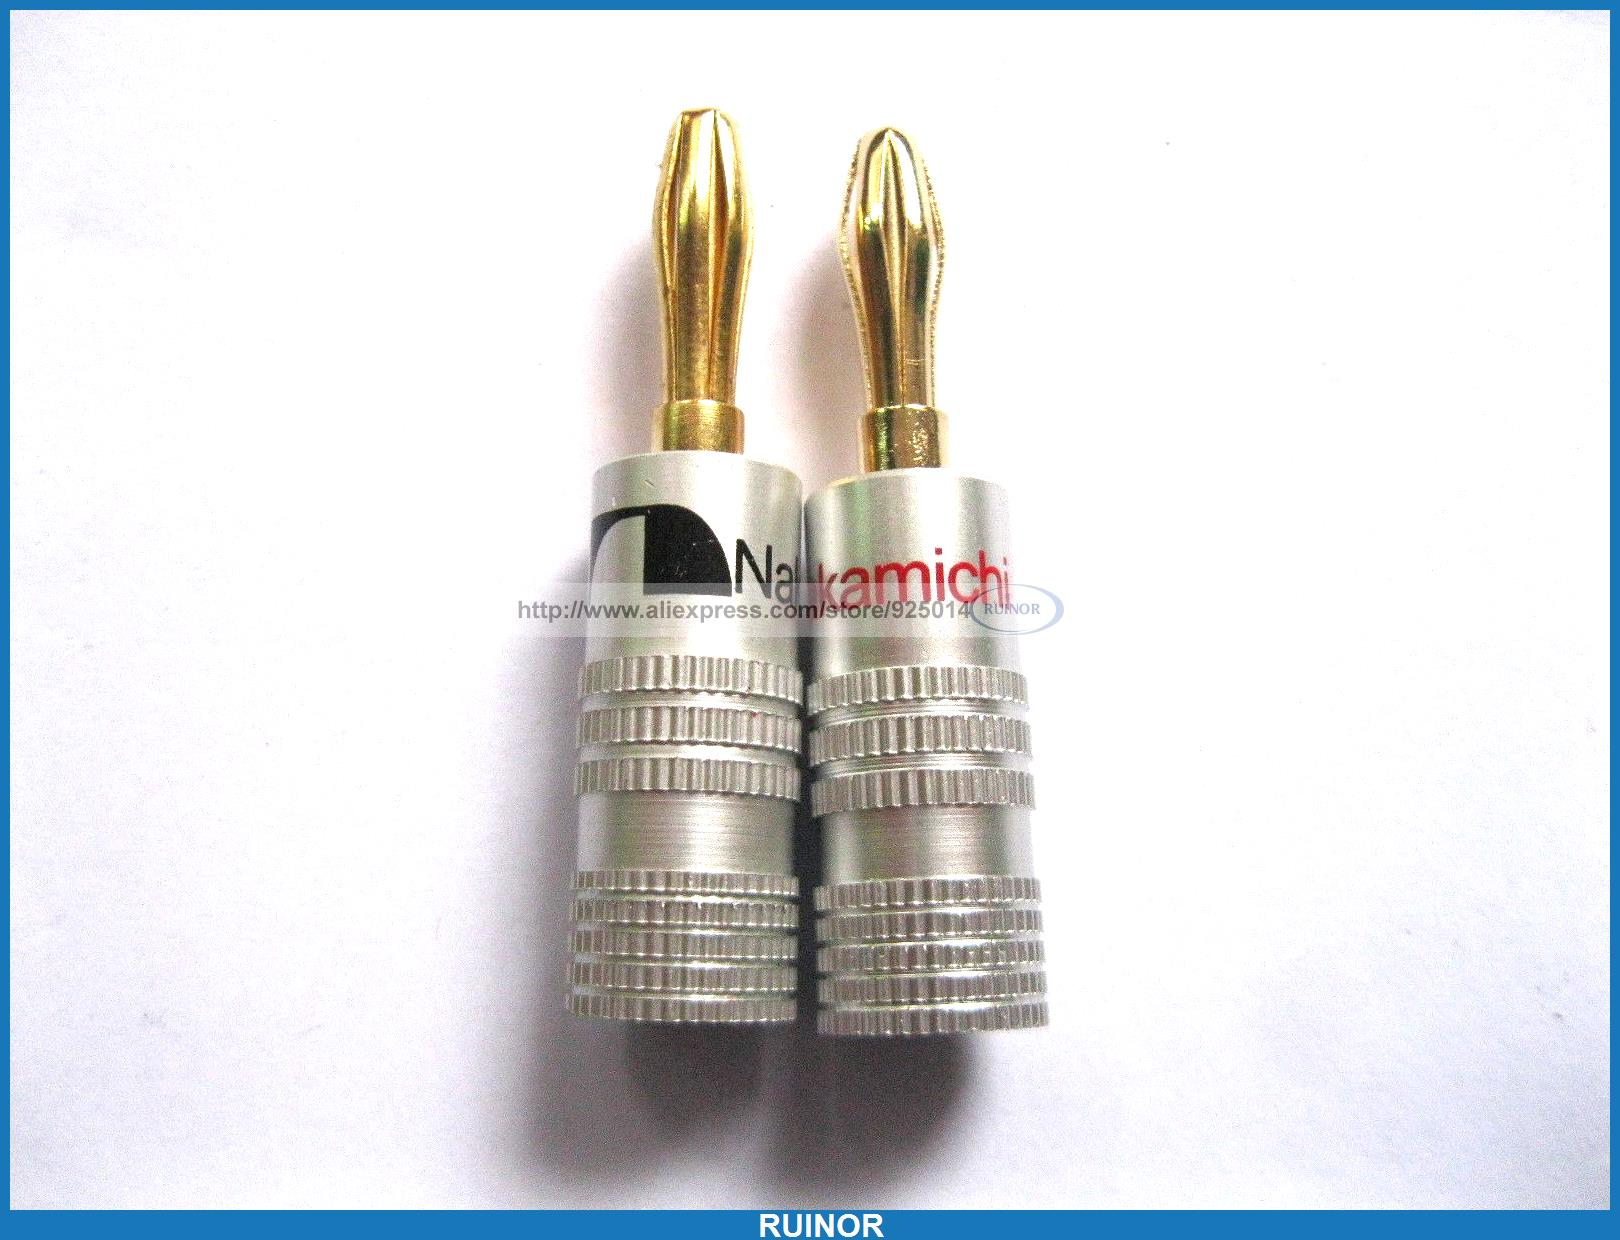 10 Pcs Nakamichi Gold Plated Speaker Banana Plug Connector  high end audio grade nakamichi ac 205 24k gold plated banana plug for diy speaker cable